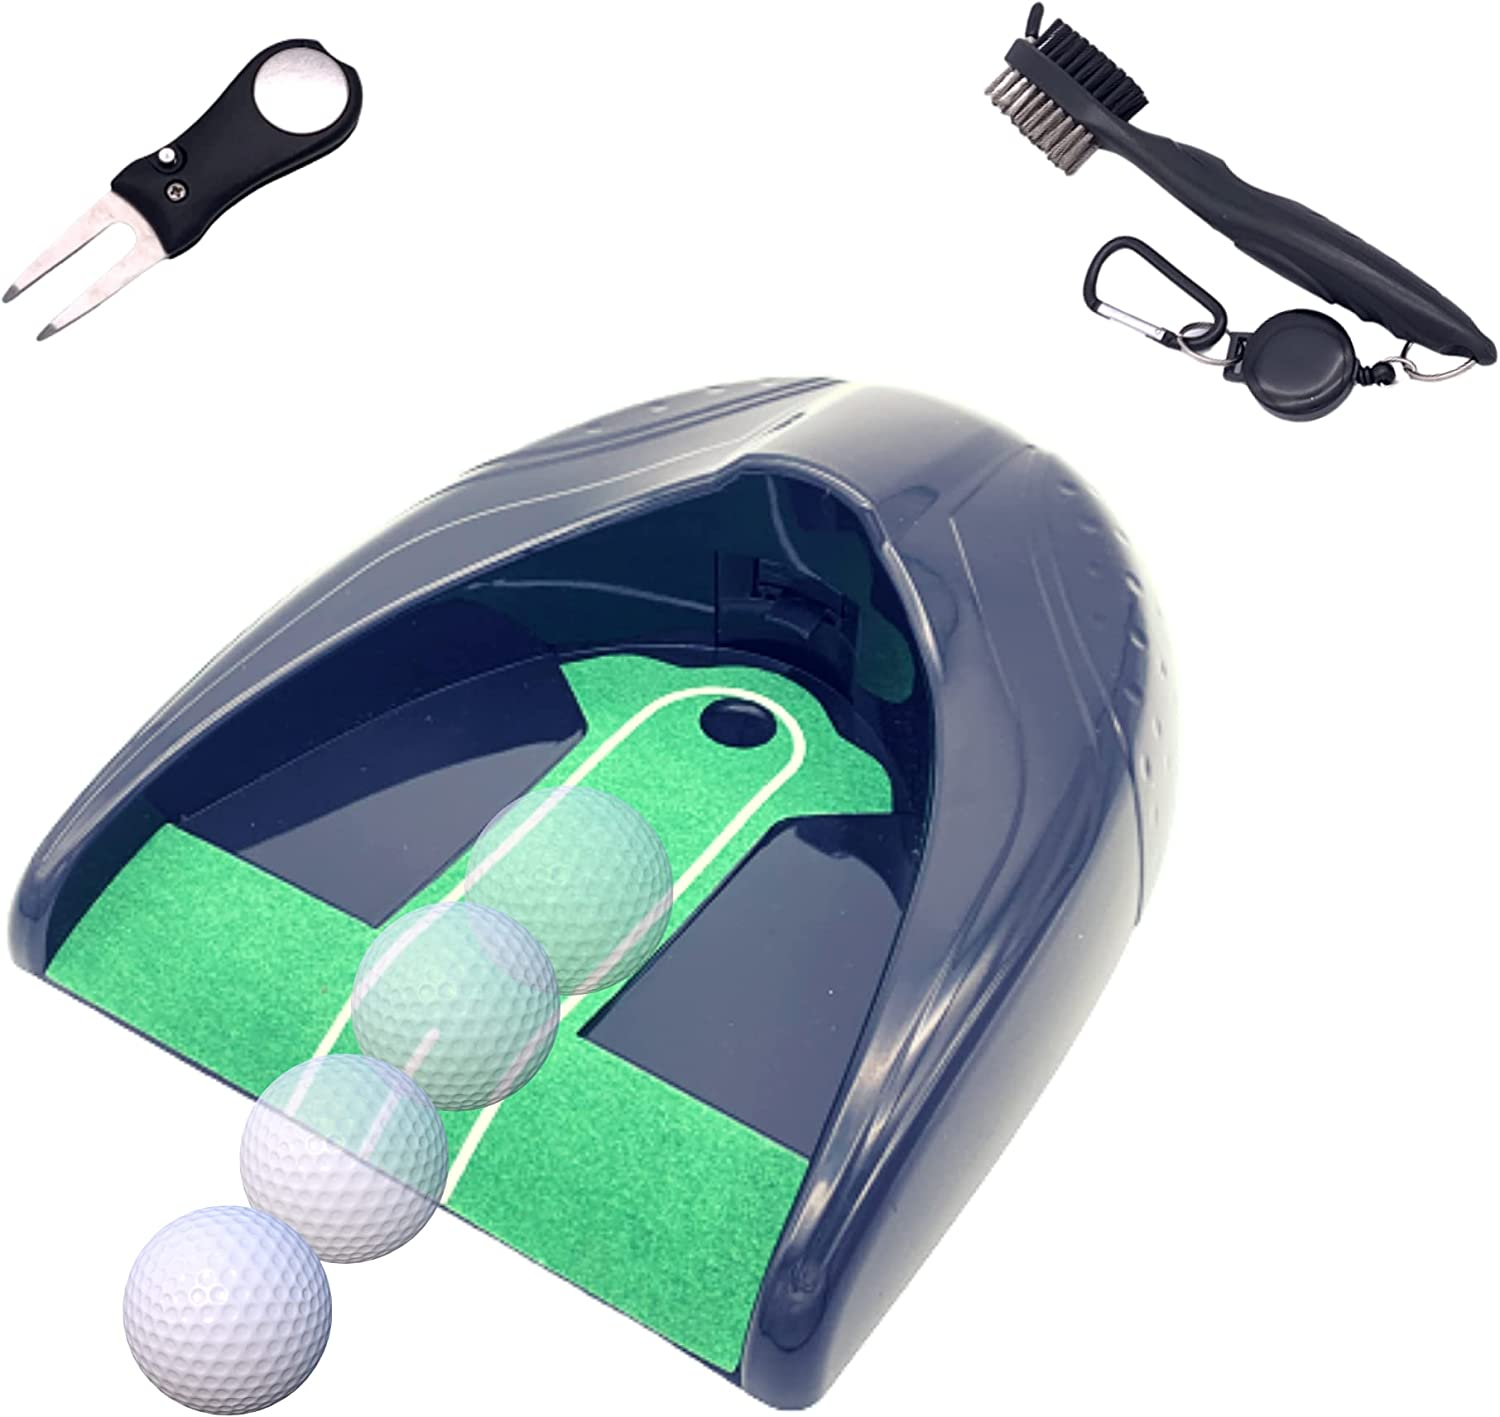 NITROVO Automatic Golf Putting Cup San Francisco Max 73% OFF Mall Divo Returner Set 2-in-1 with